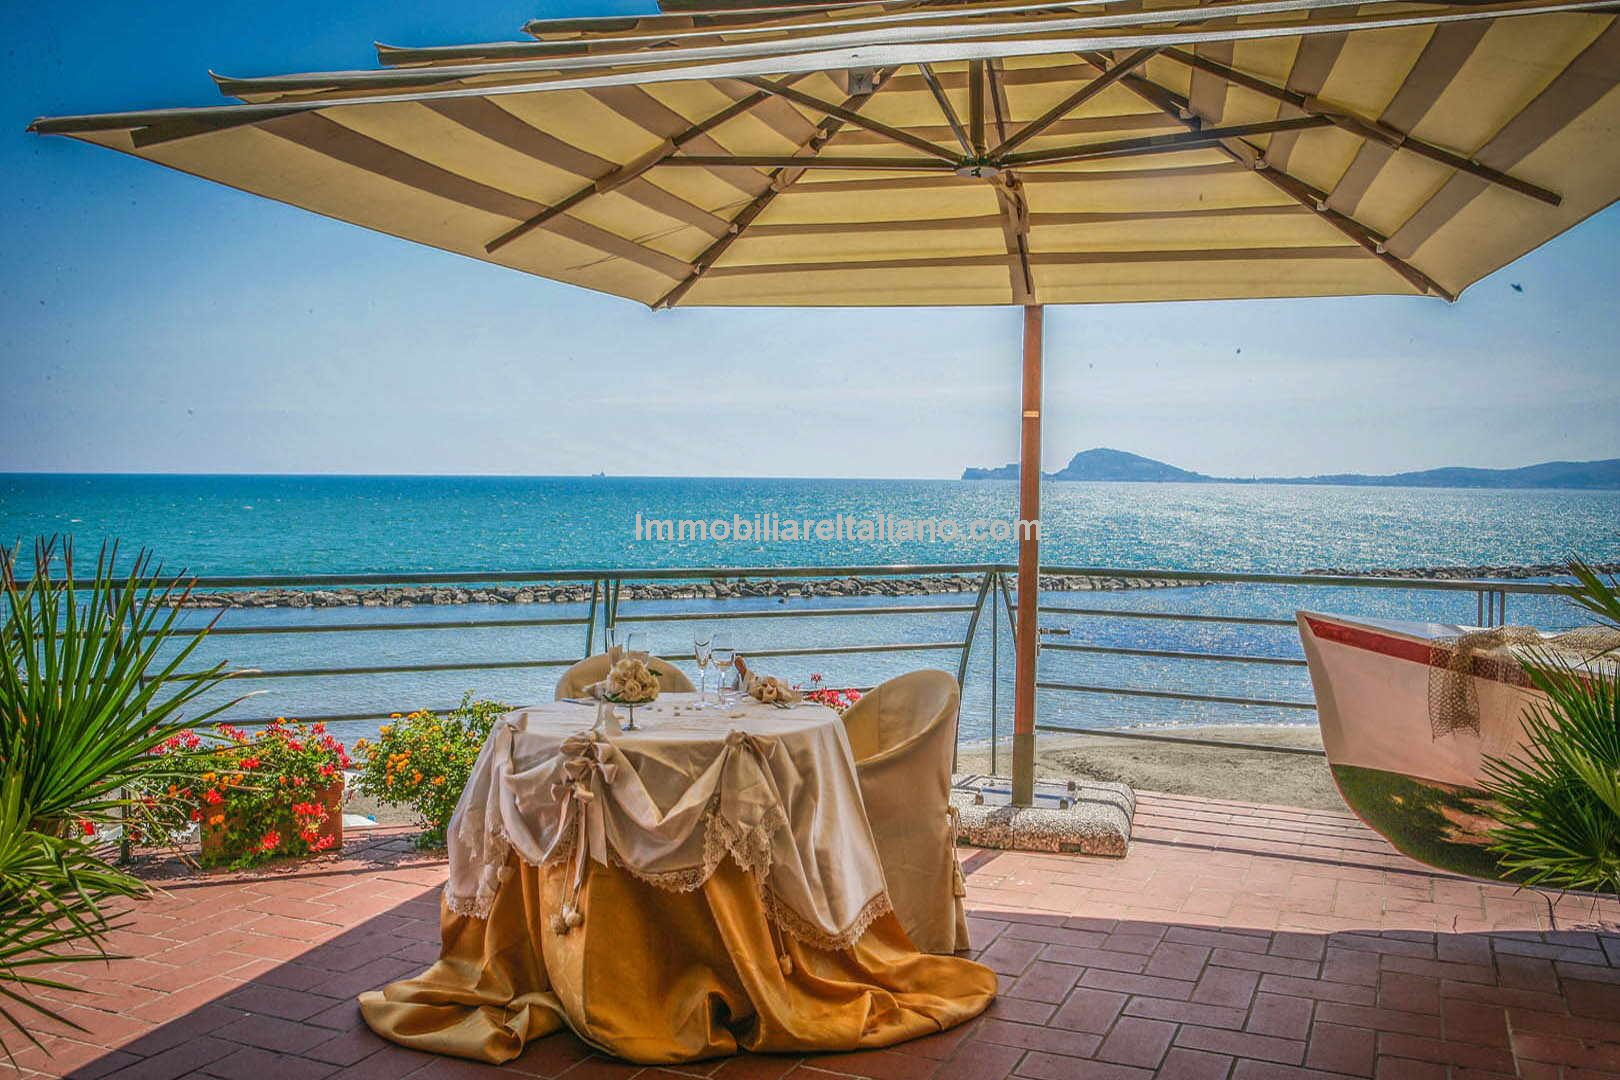 Hotel in Italy for sale – Formia Gulf of Gaeta